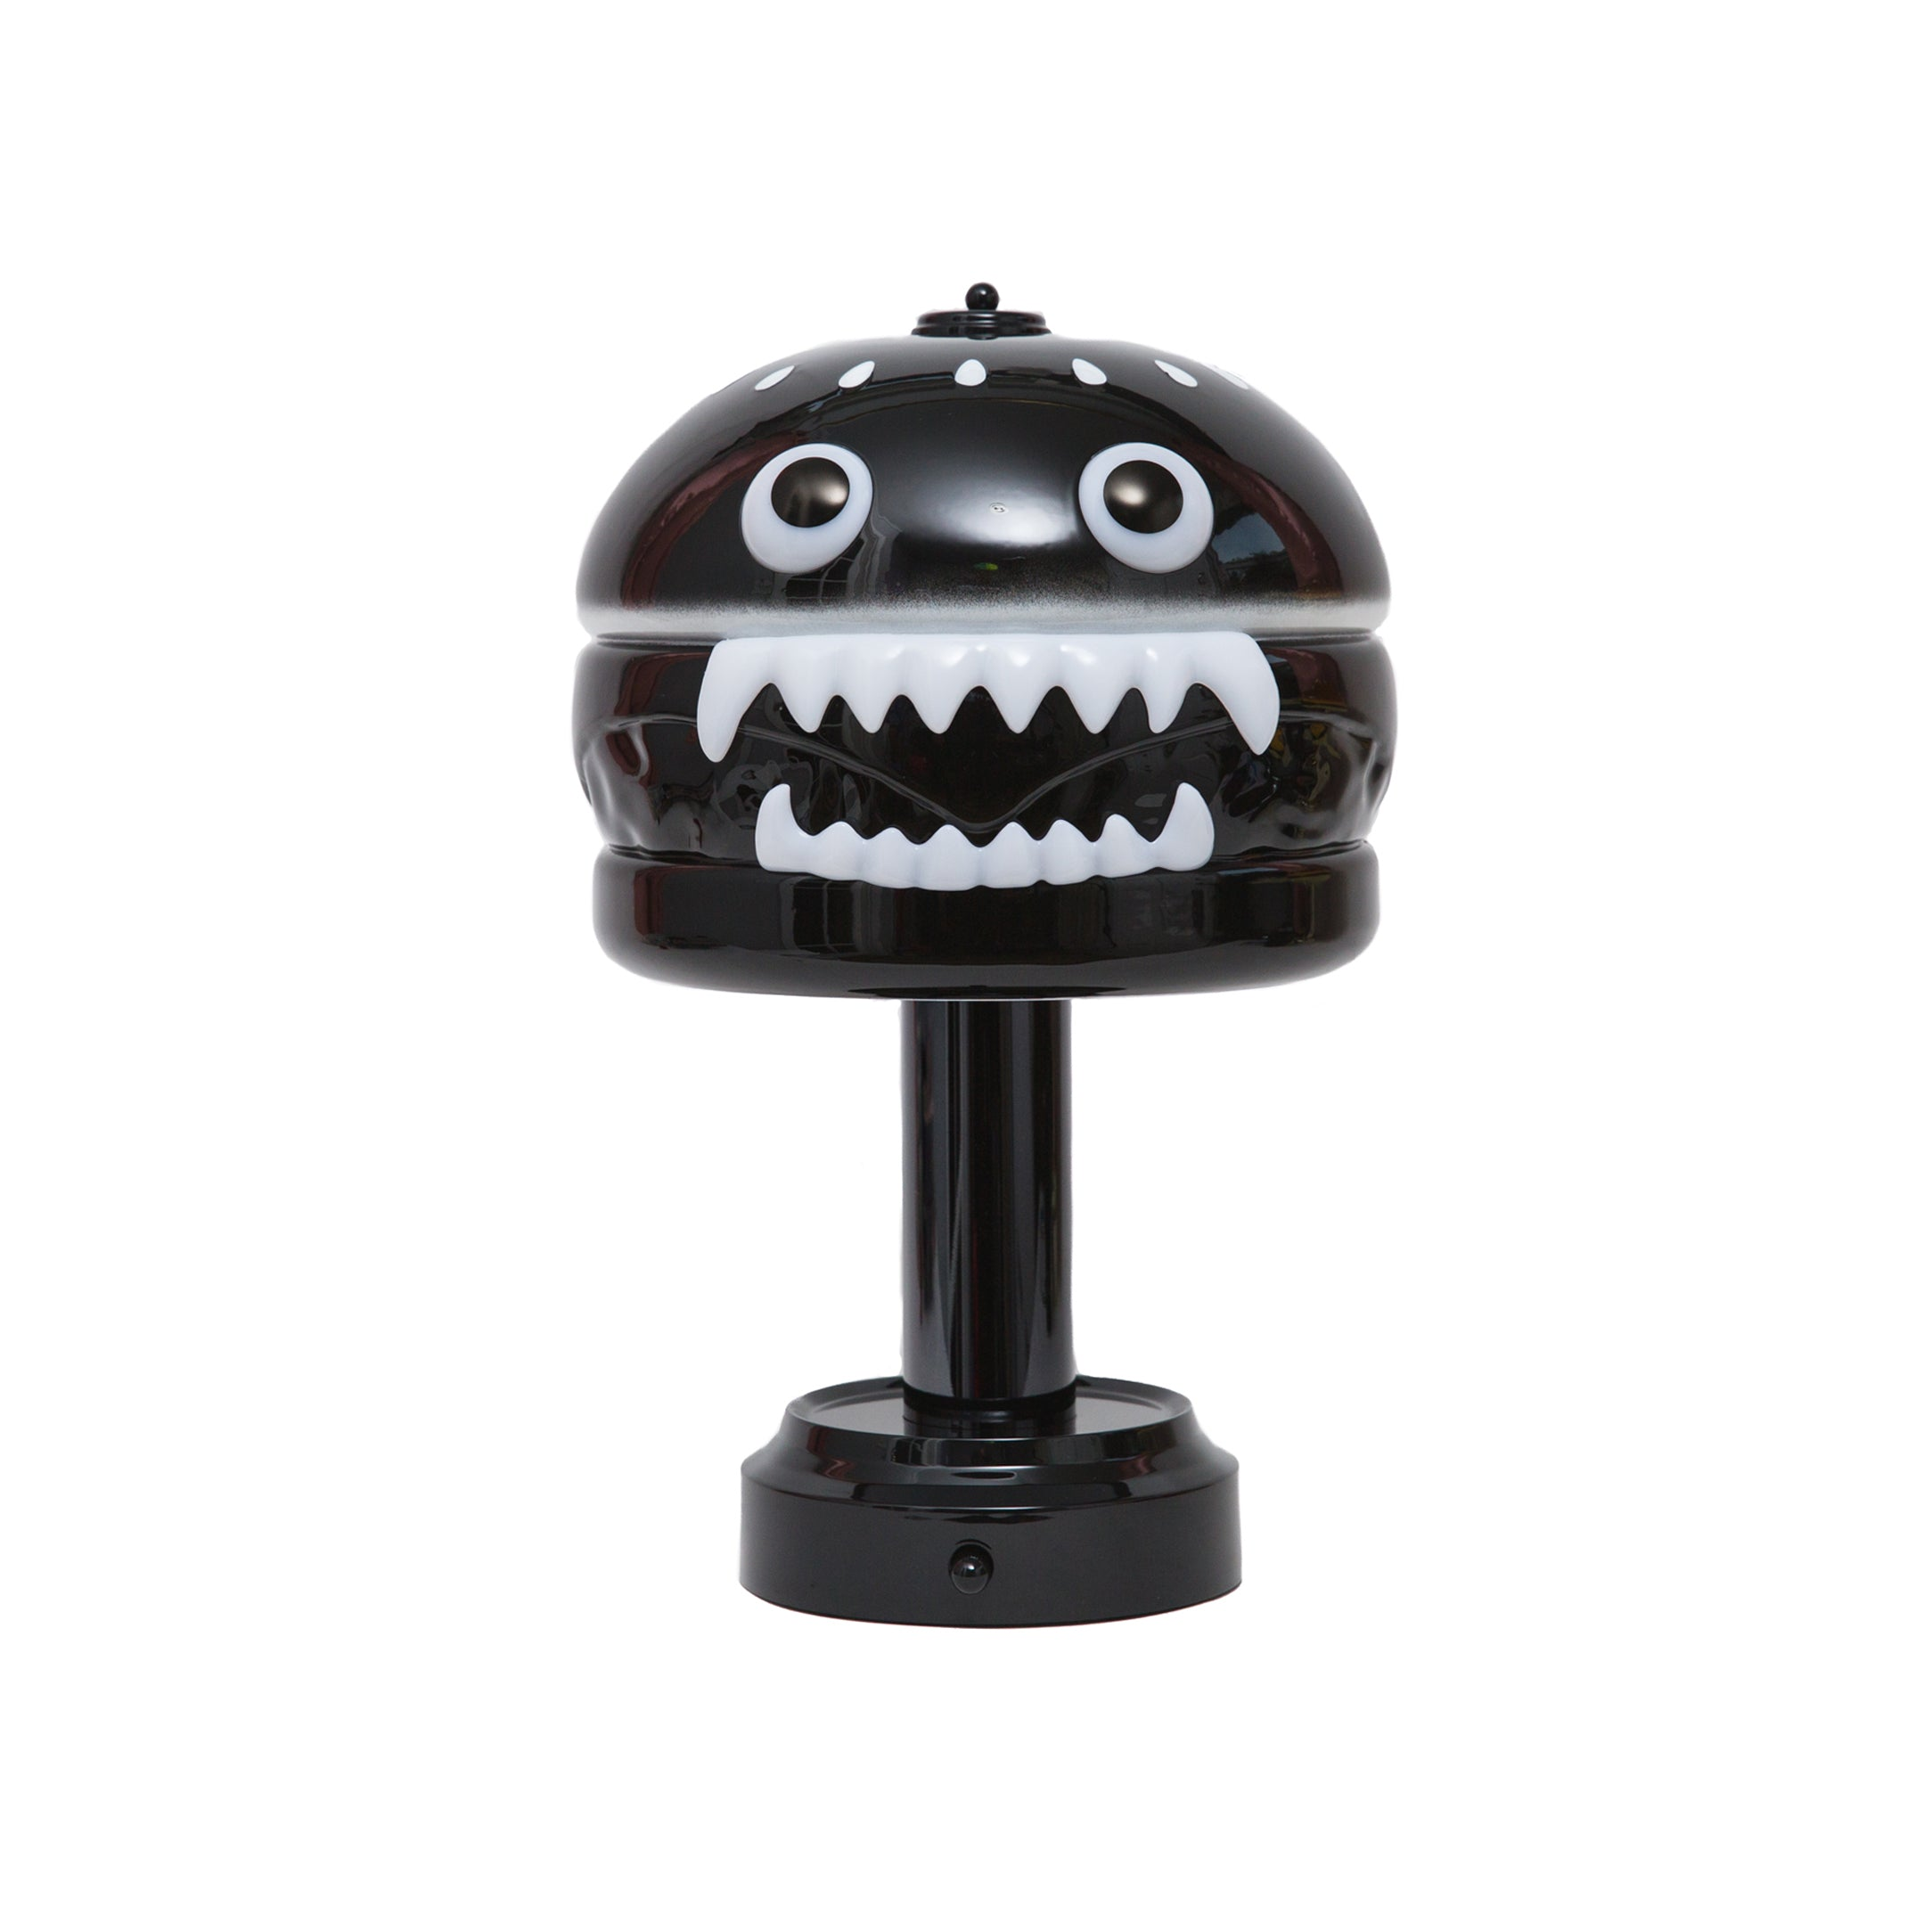 UNDERCOVER HAMBURGER LAMP (BLACK)